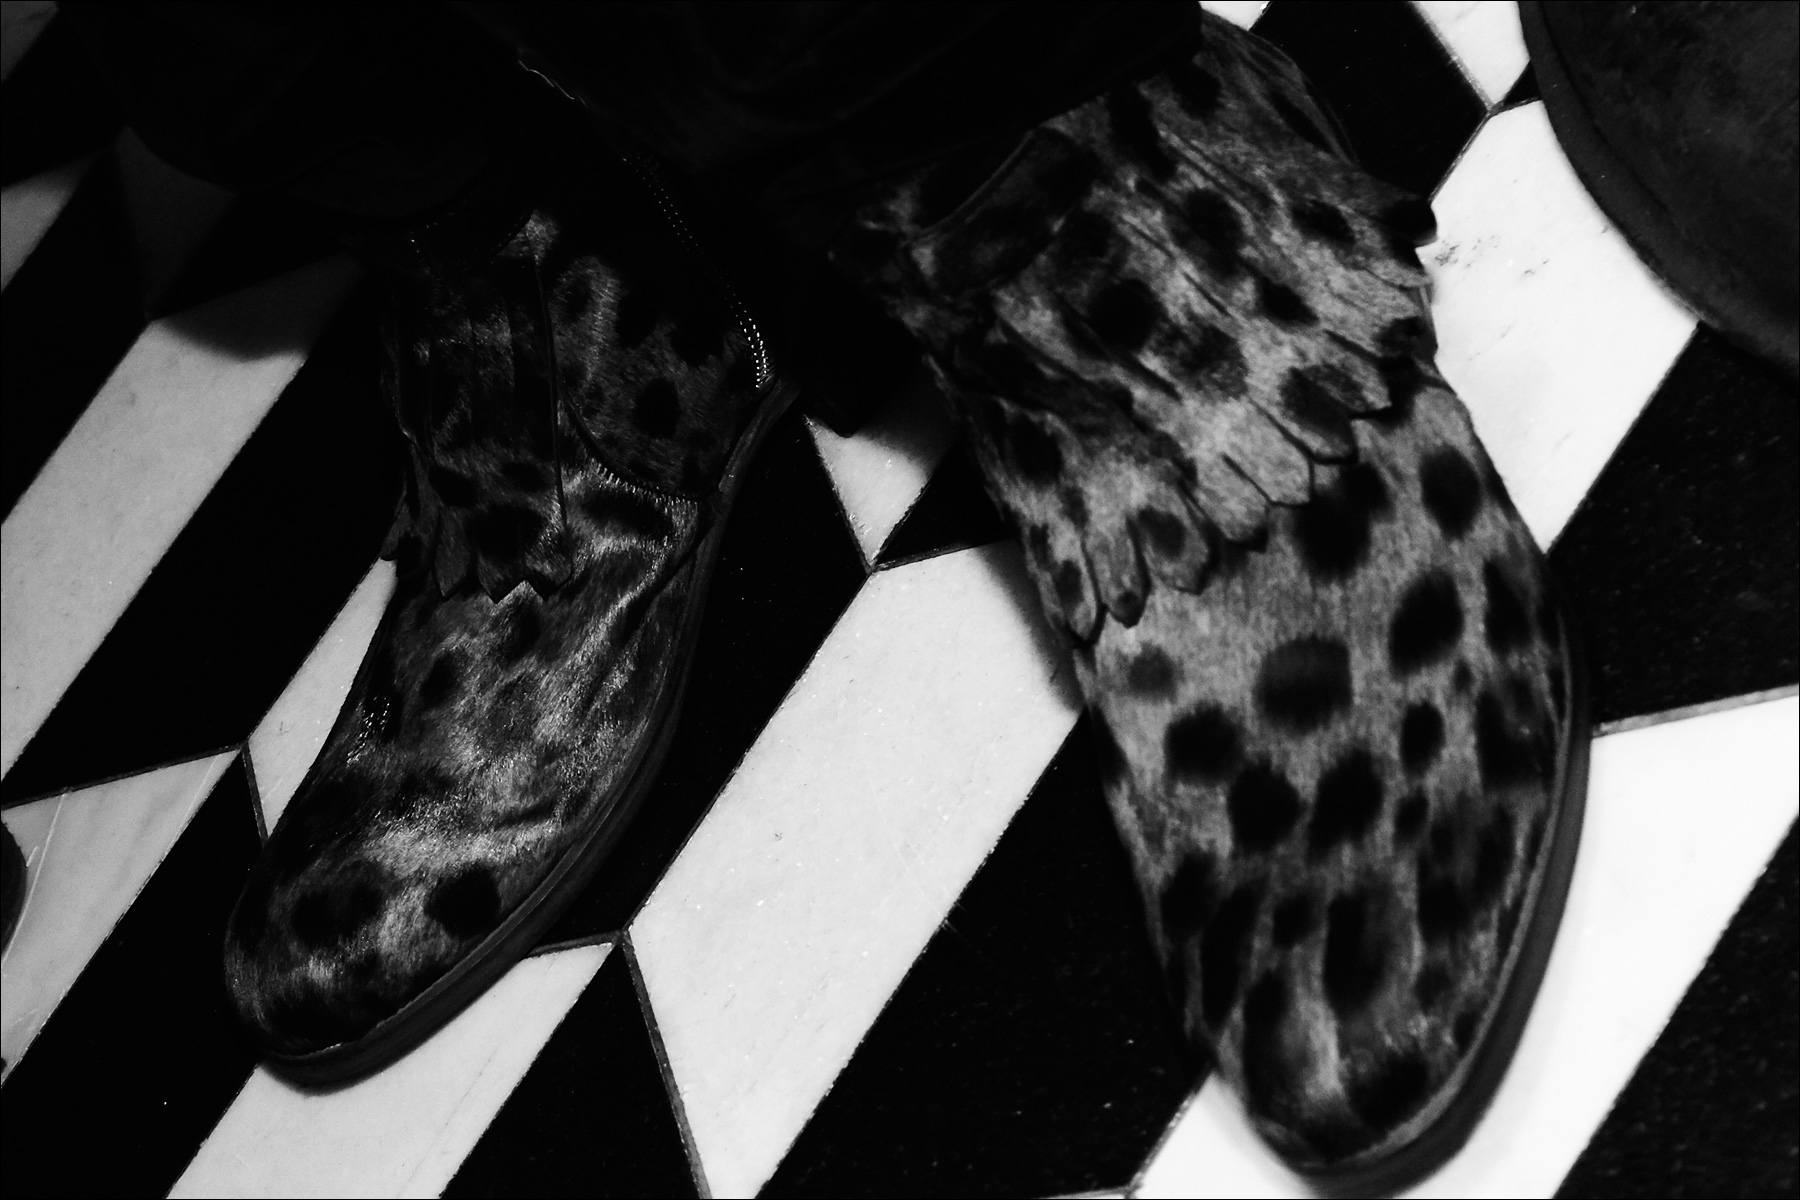 Leopard print ankle boots from John Varvatos Fall/Winter 2017 menswear collection. Photographed backstage by Alexander Thompson for Ponyboy magazine NY.